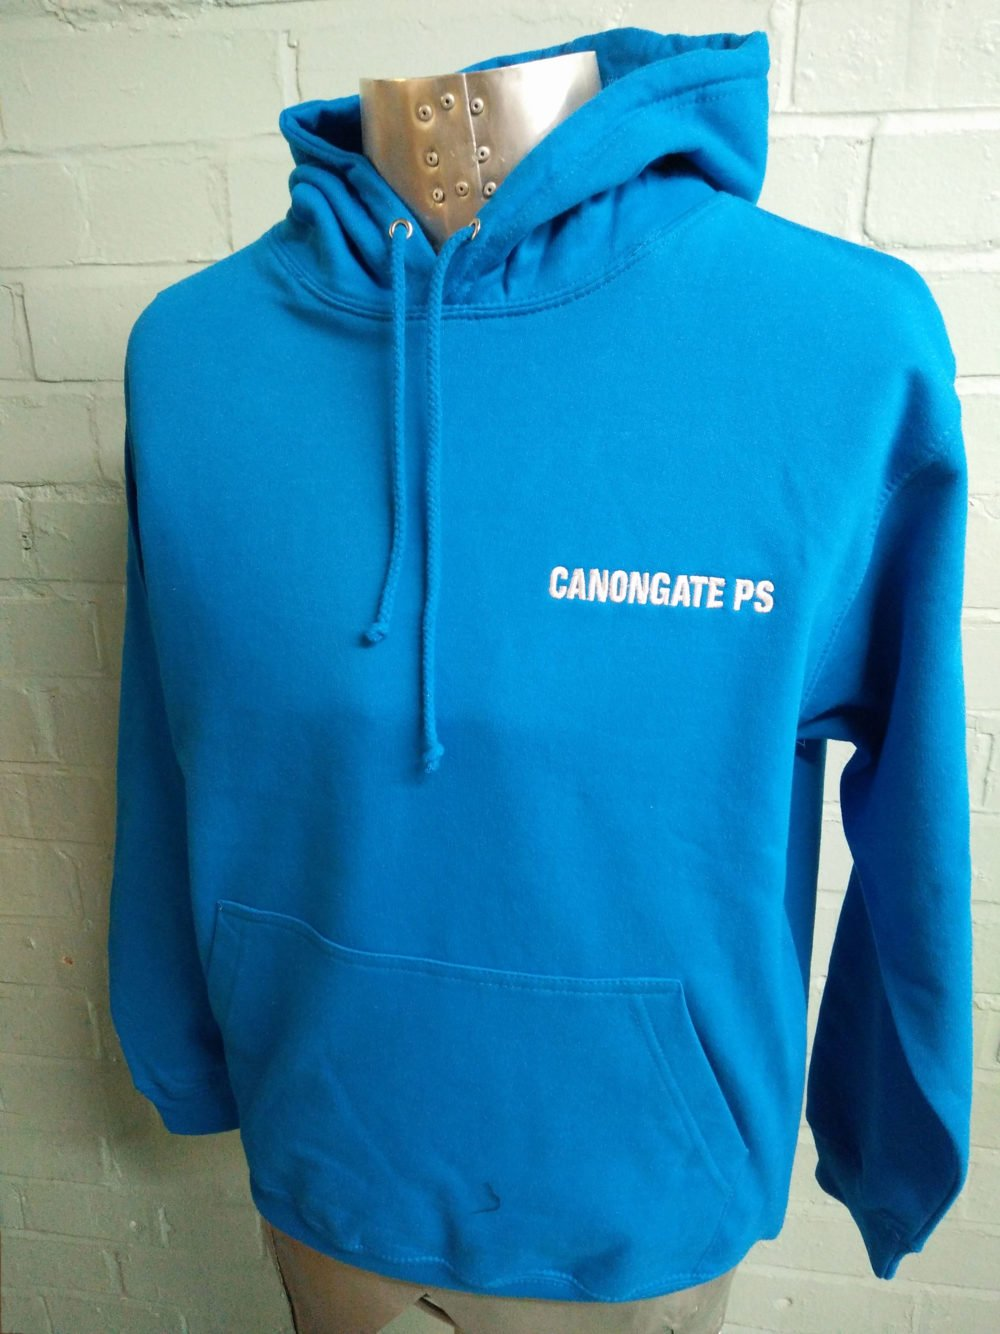 Canongate Primary School Leavers Hoodies